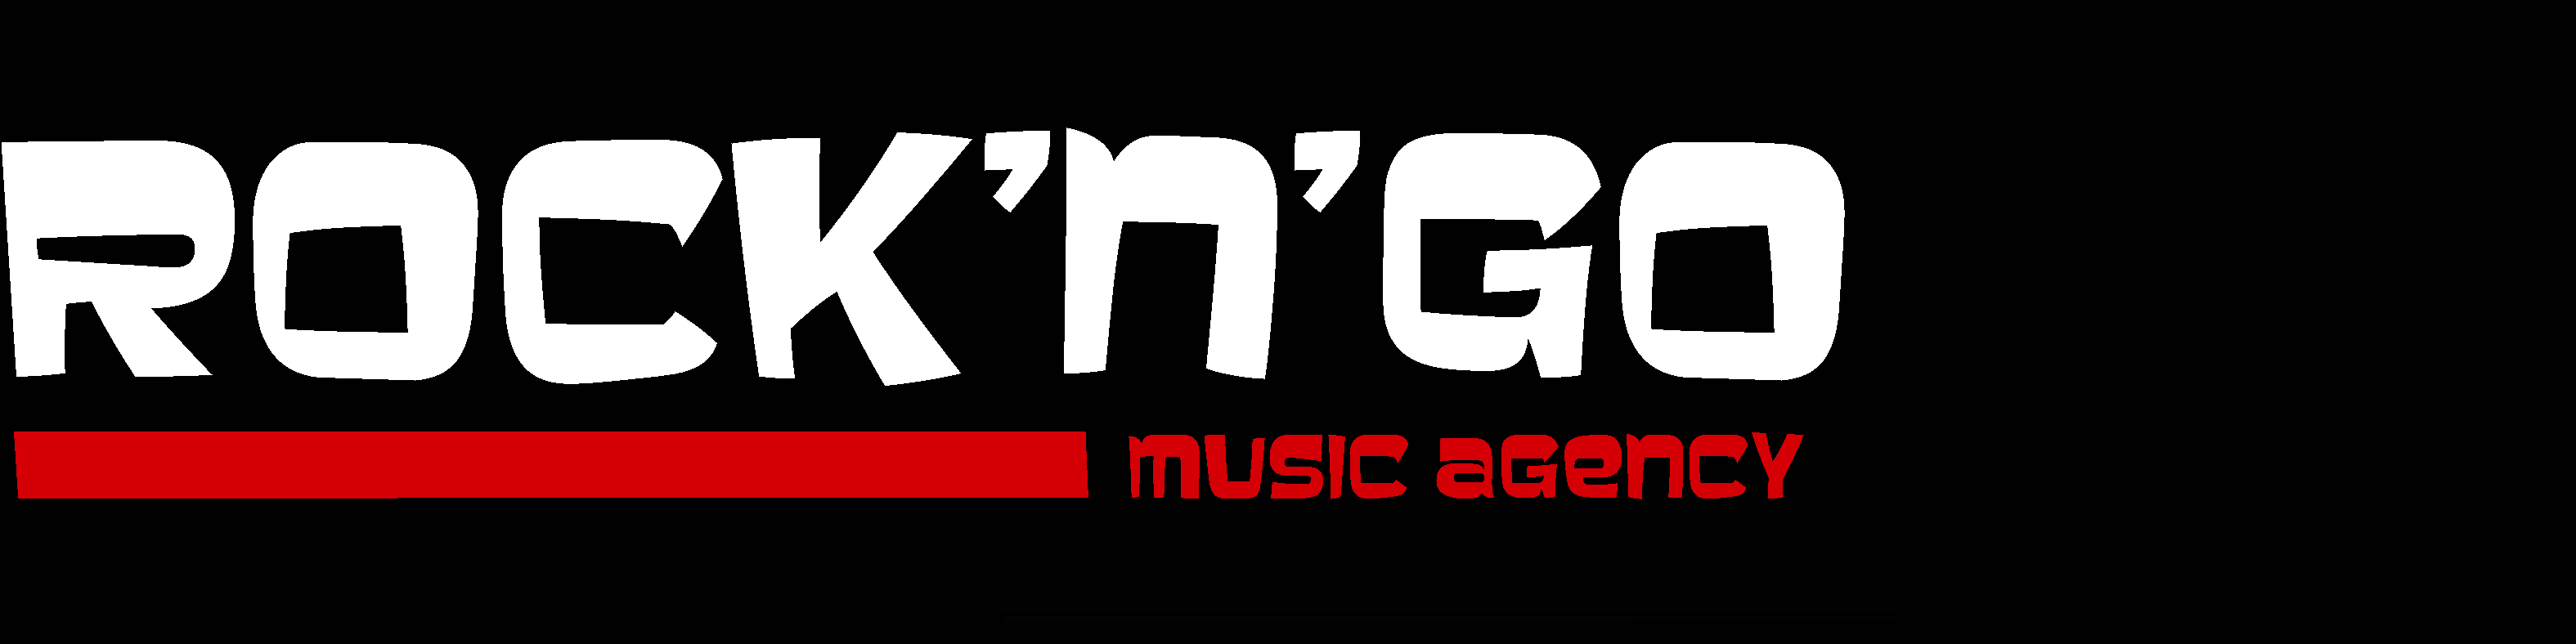 ROCK'n'GO MUSIC AGENCY 2019